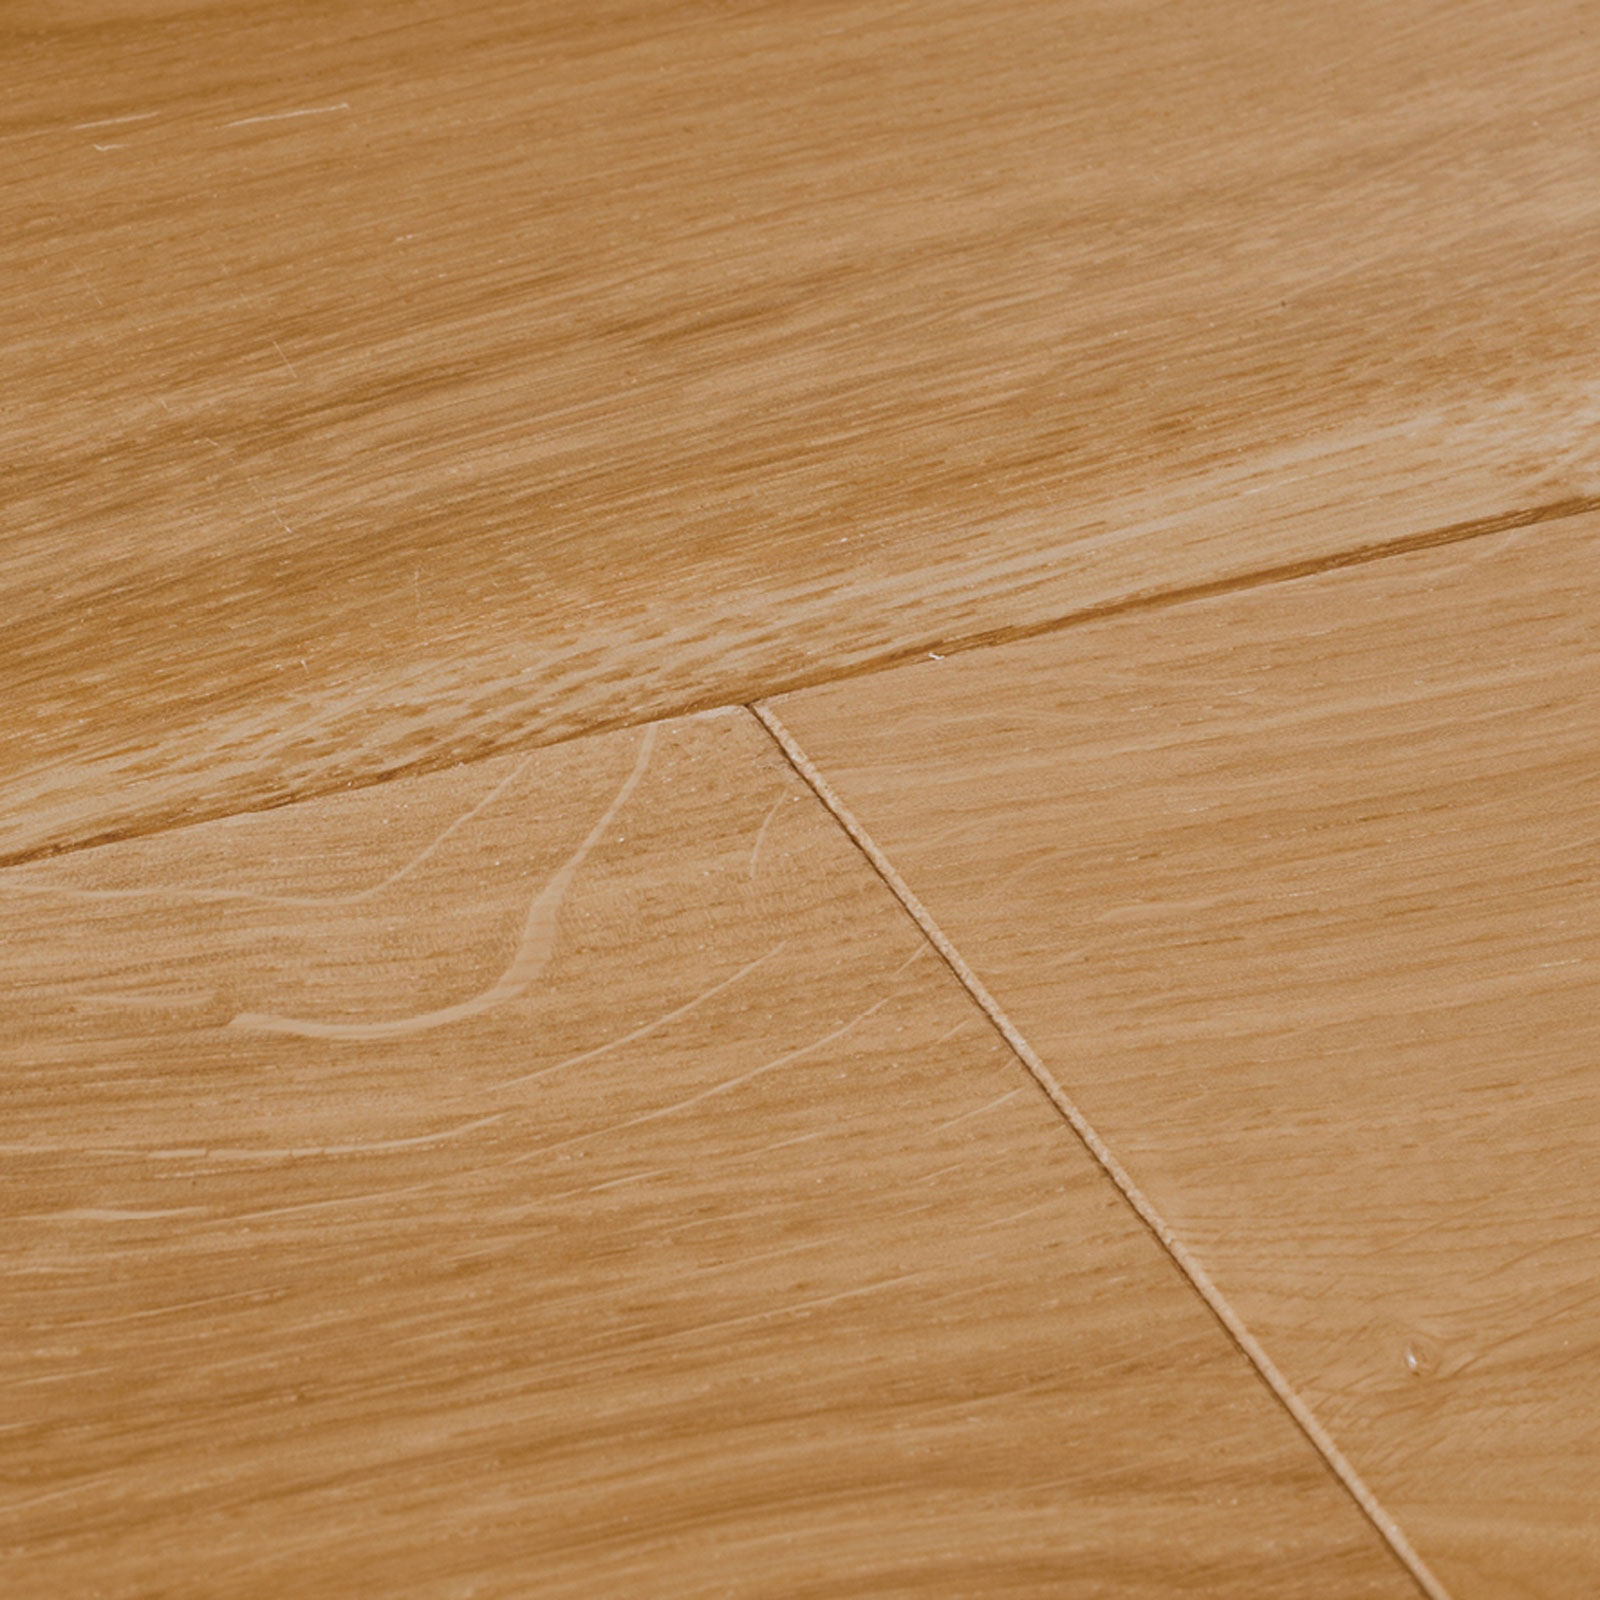 Chepstow planed natural oak flooring woodpecker flooring for Natural oak wood flooring